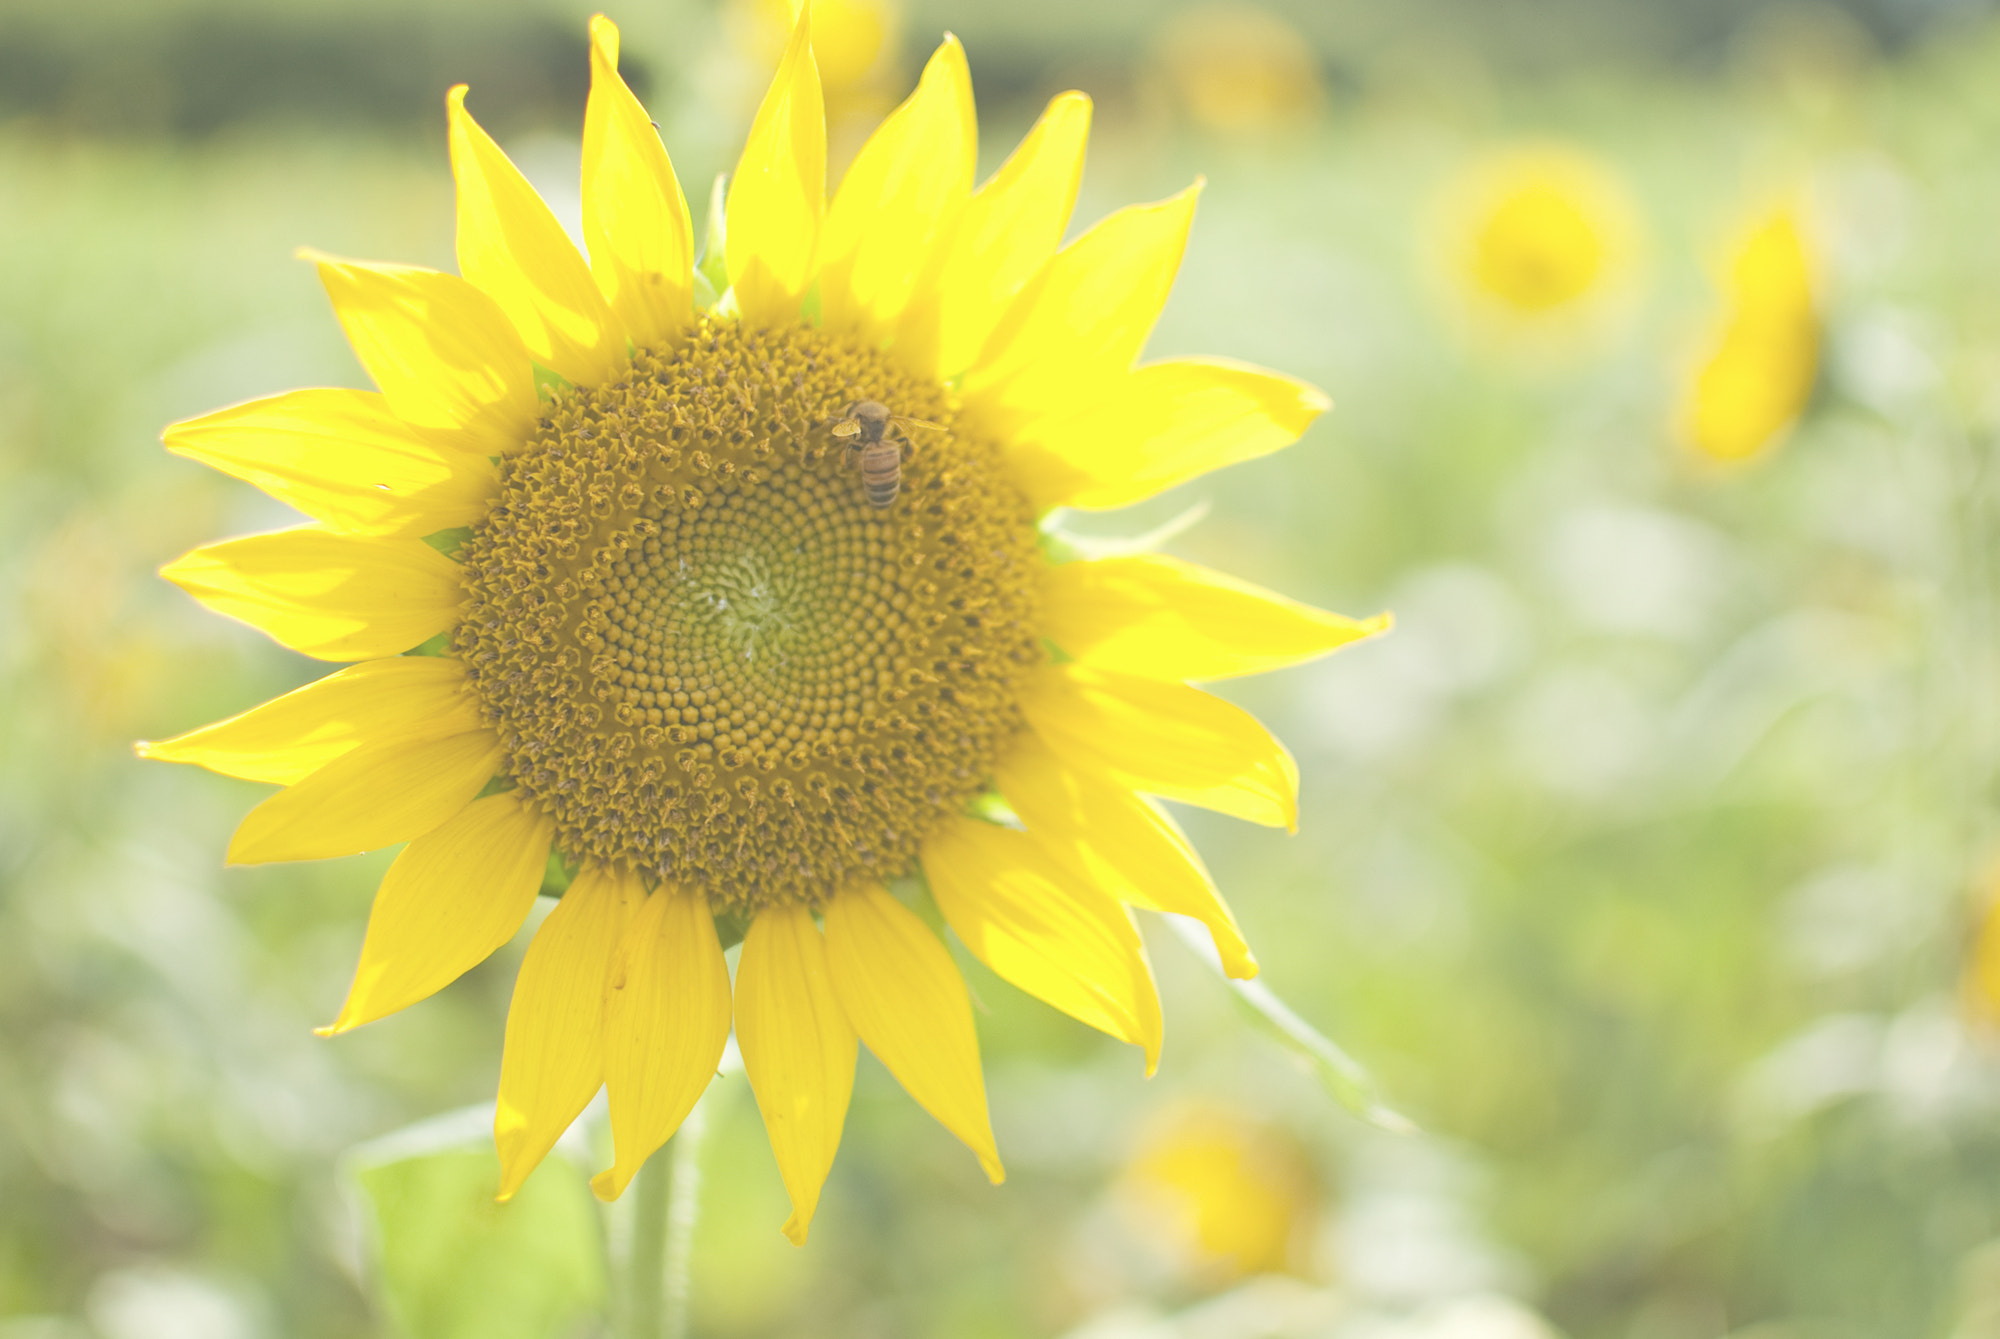 Photograph Sunflower and bee 2 by 蔻可 吳 on 500px